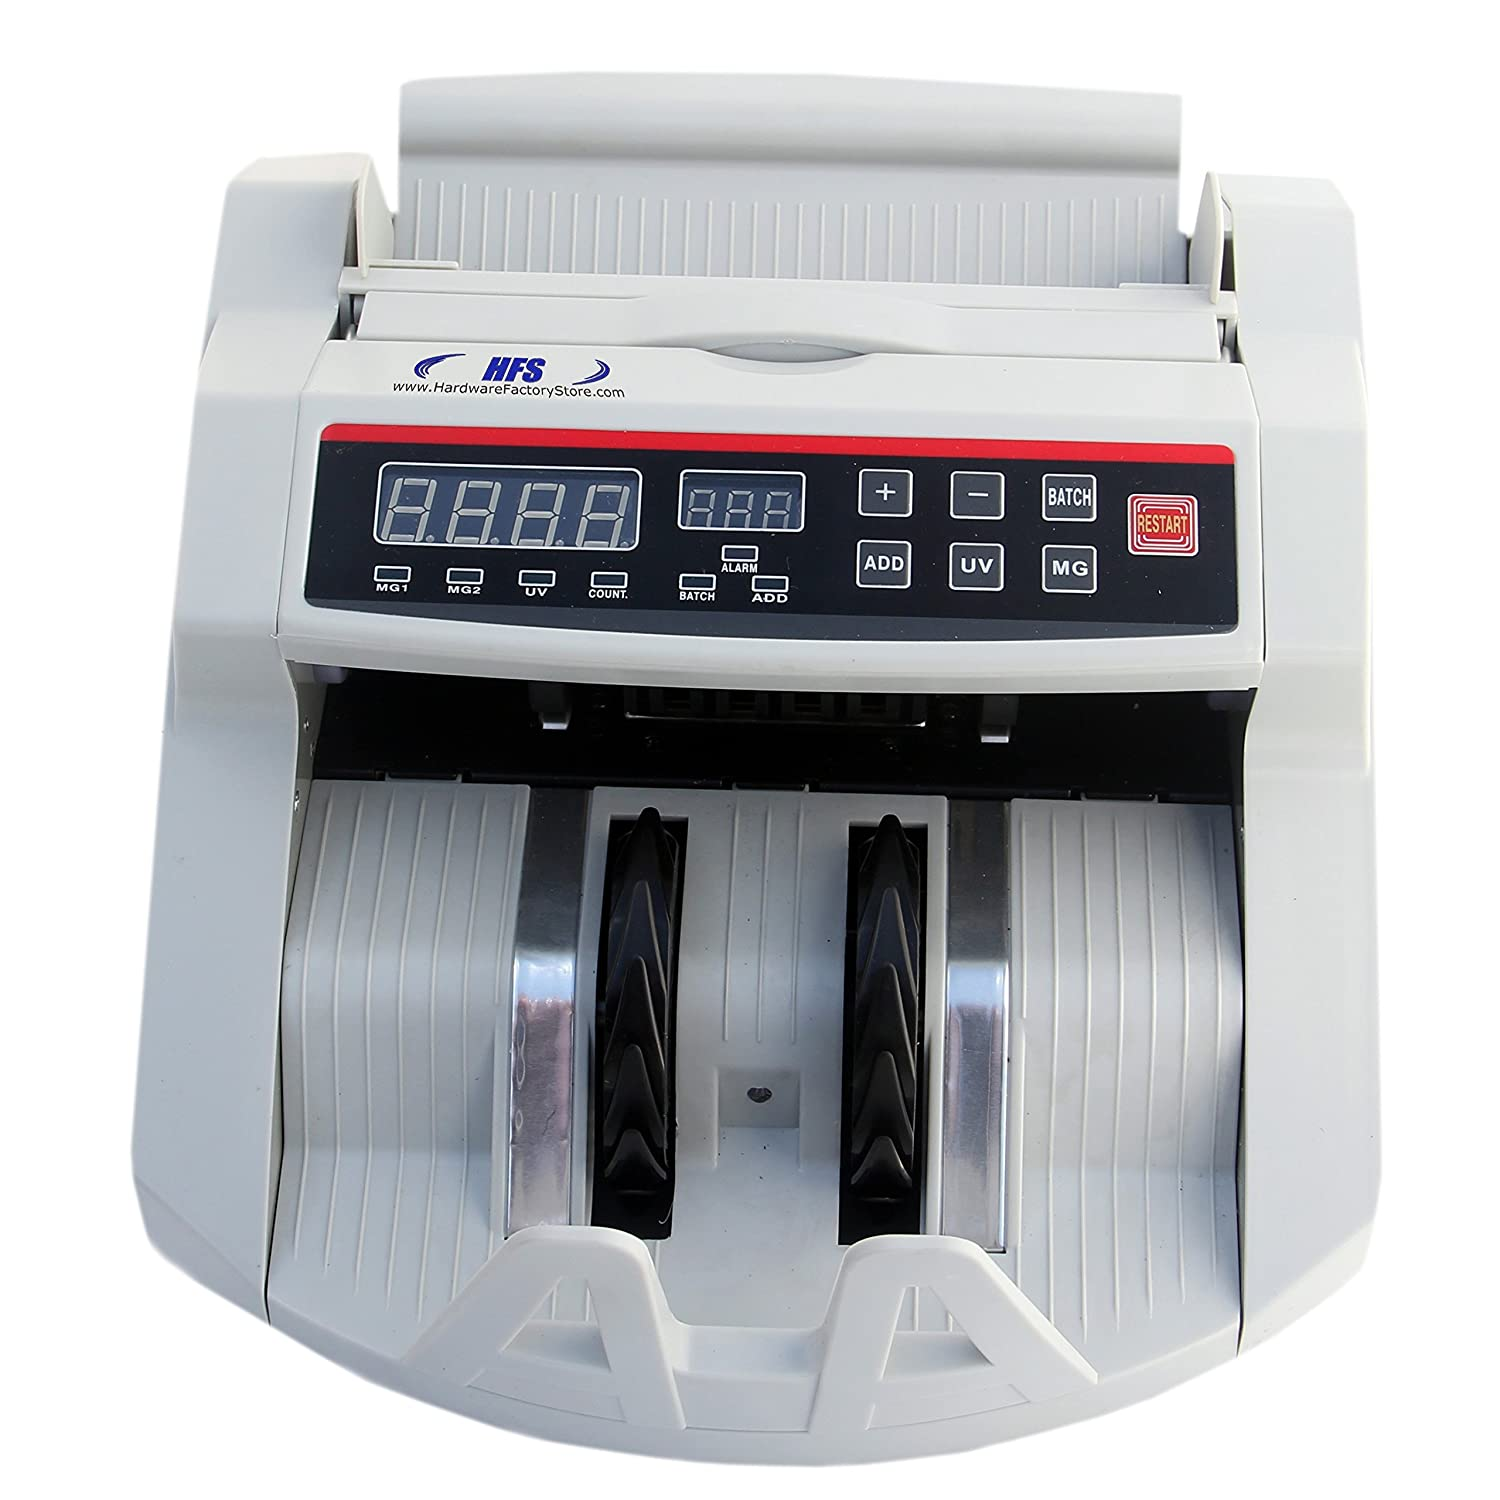 HFS Bill Money Counter Multi Cash Counting Machine - COUNTB01